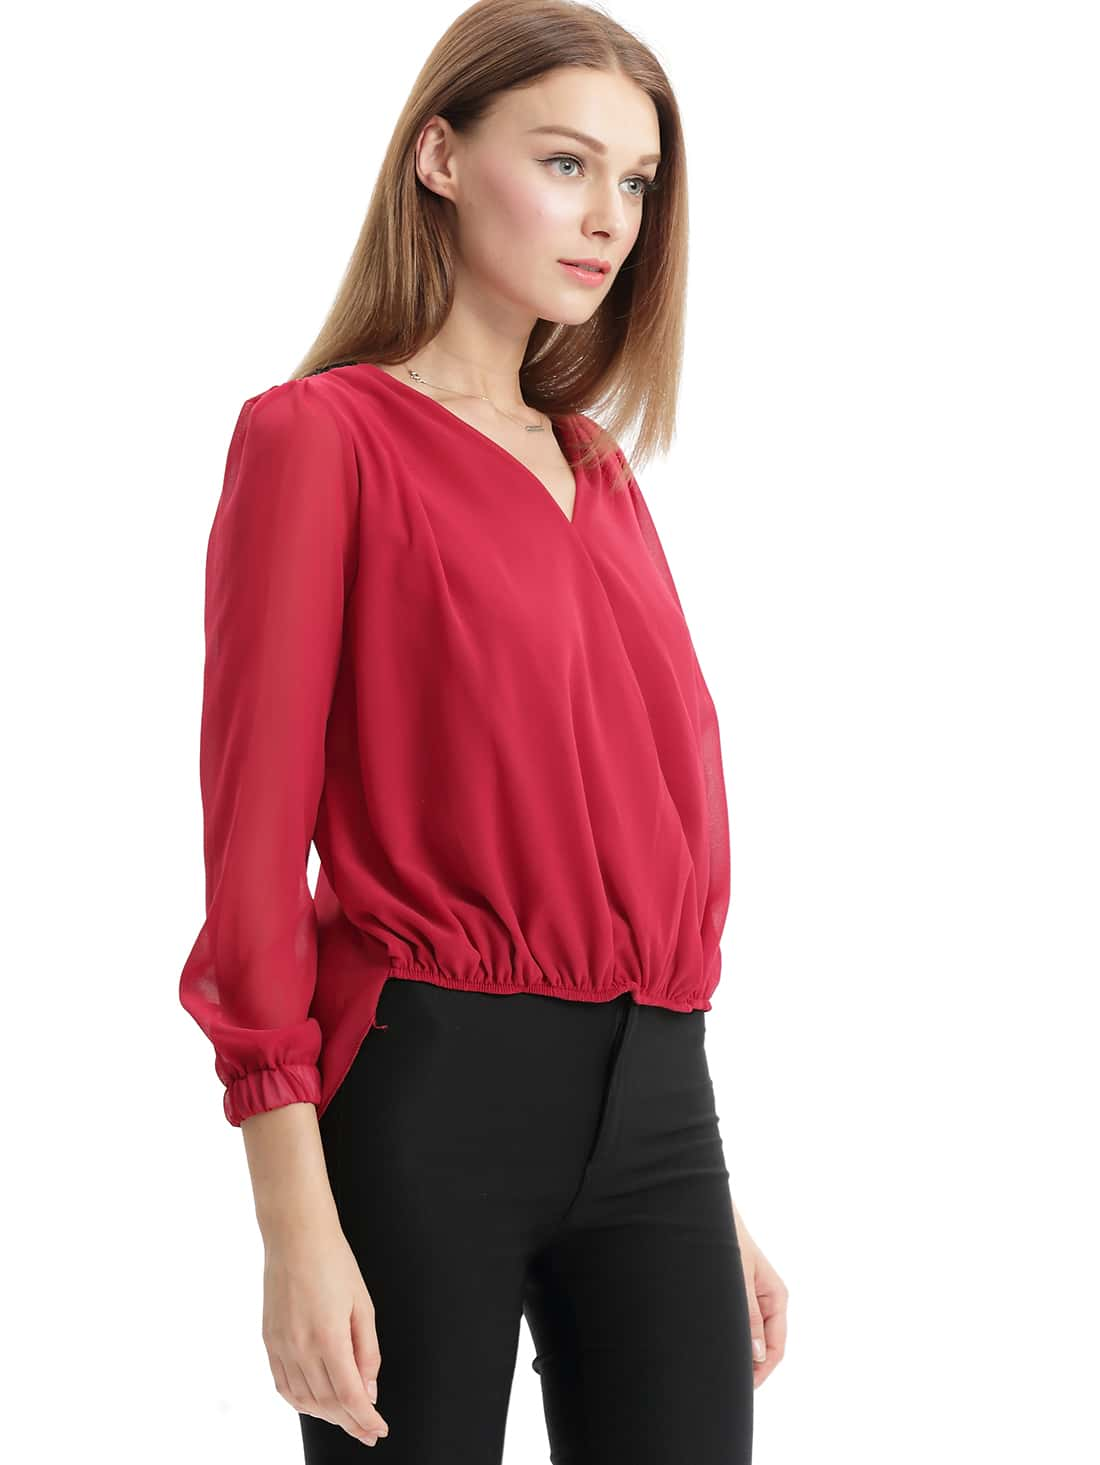 Shop for red blouses at fabulousdown4allb7.cf Free Shipping. Free Returns. All the time. Skip navigation. Give a little wow. The best gifts are here, every day of the year. Shop gifts. Designer. Women Men Kids Home & Gifts Beauty Sale What's Now. Sleeveless Short Sleeve 3/4 Sleeve Long Sleeve. Show Neckline.